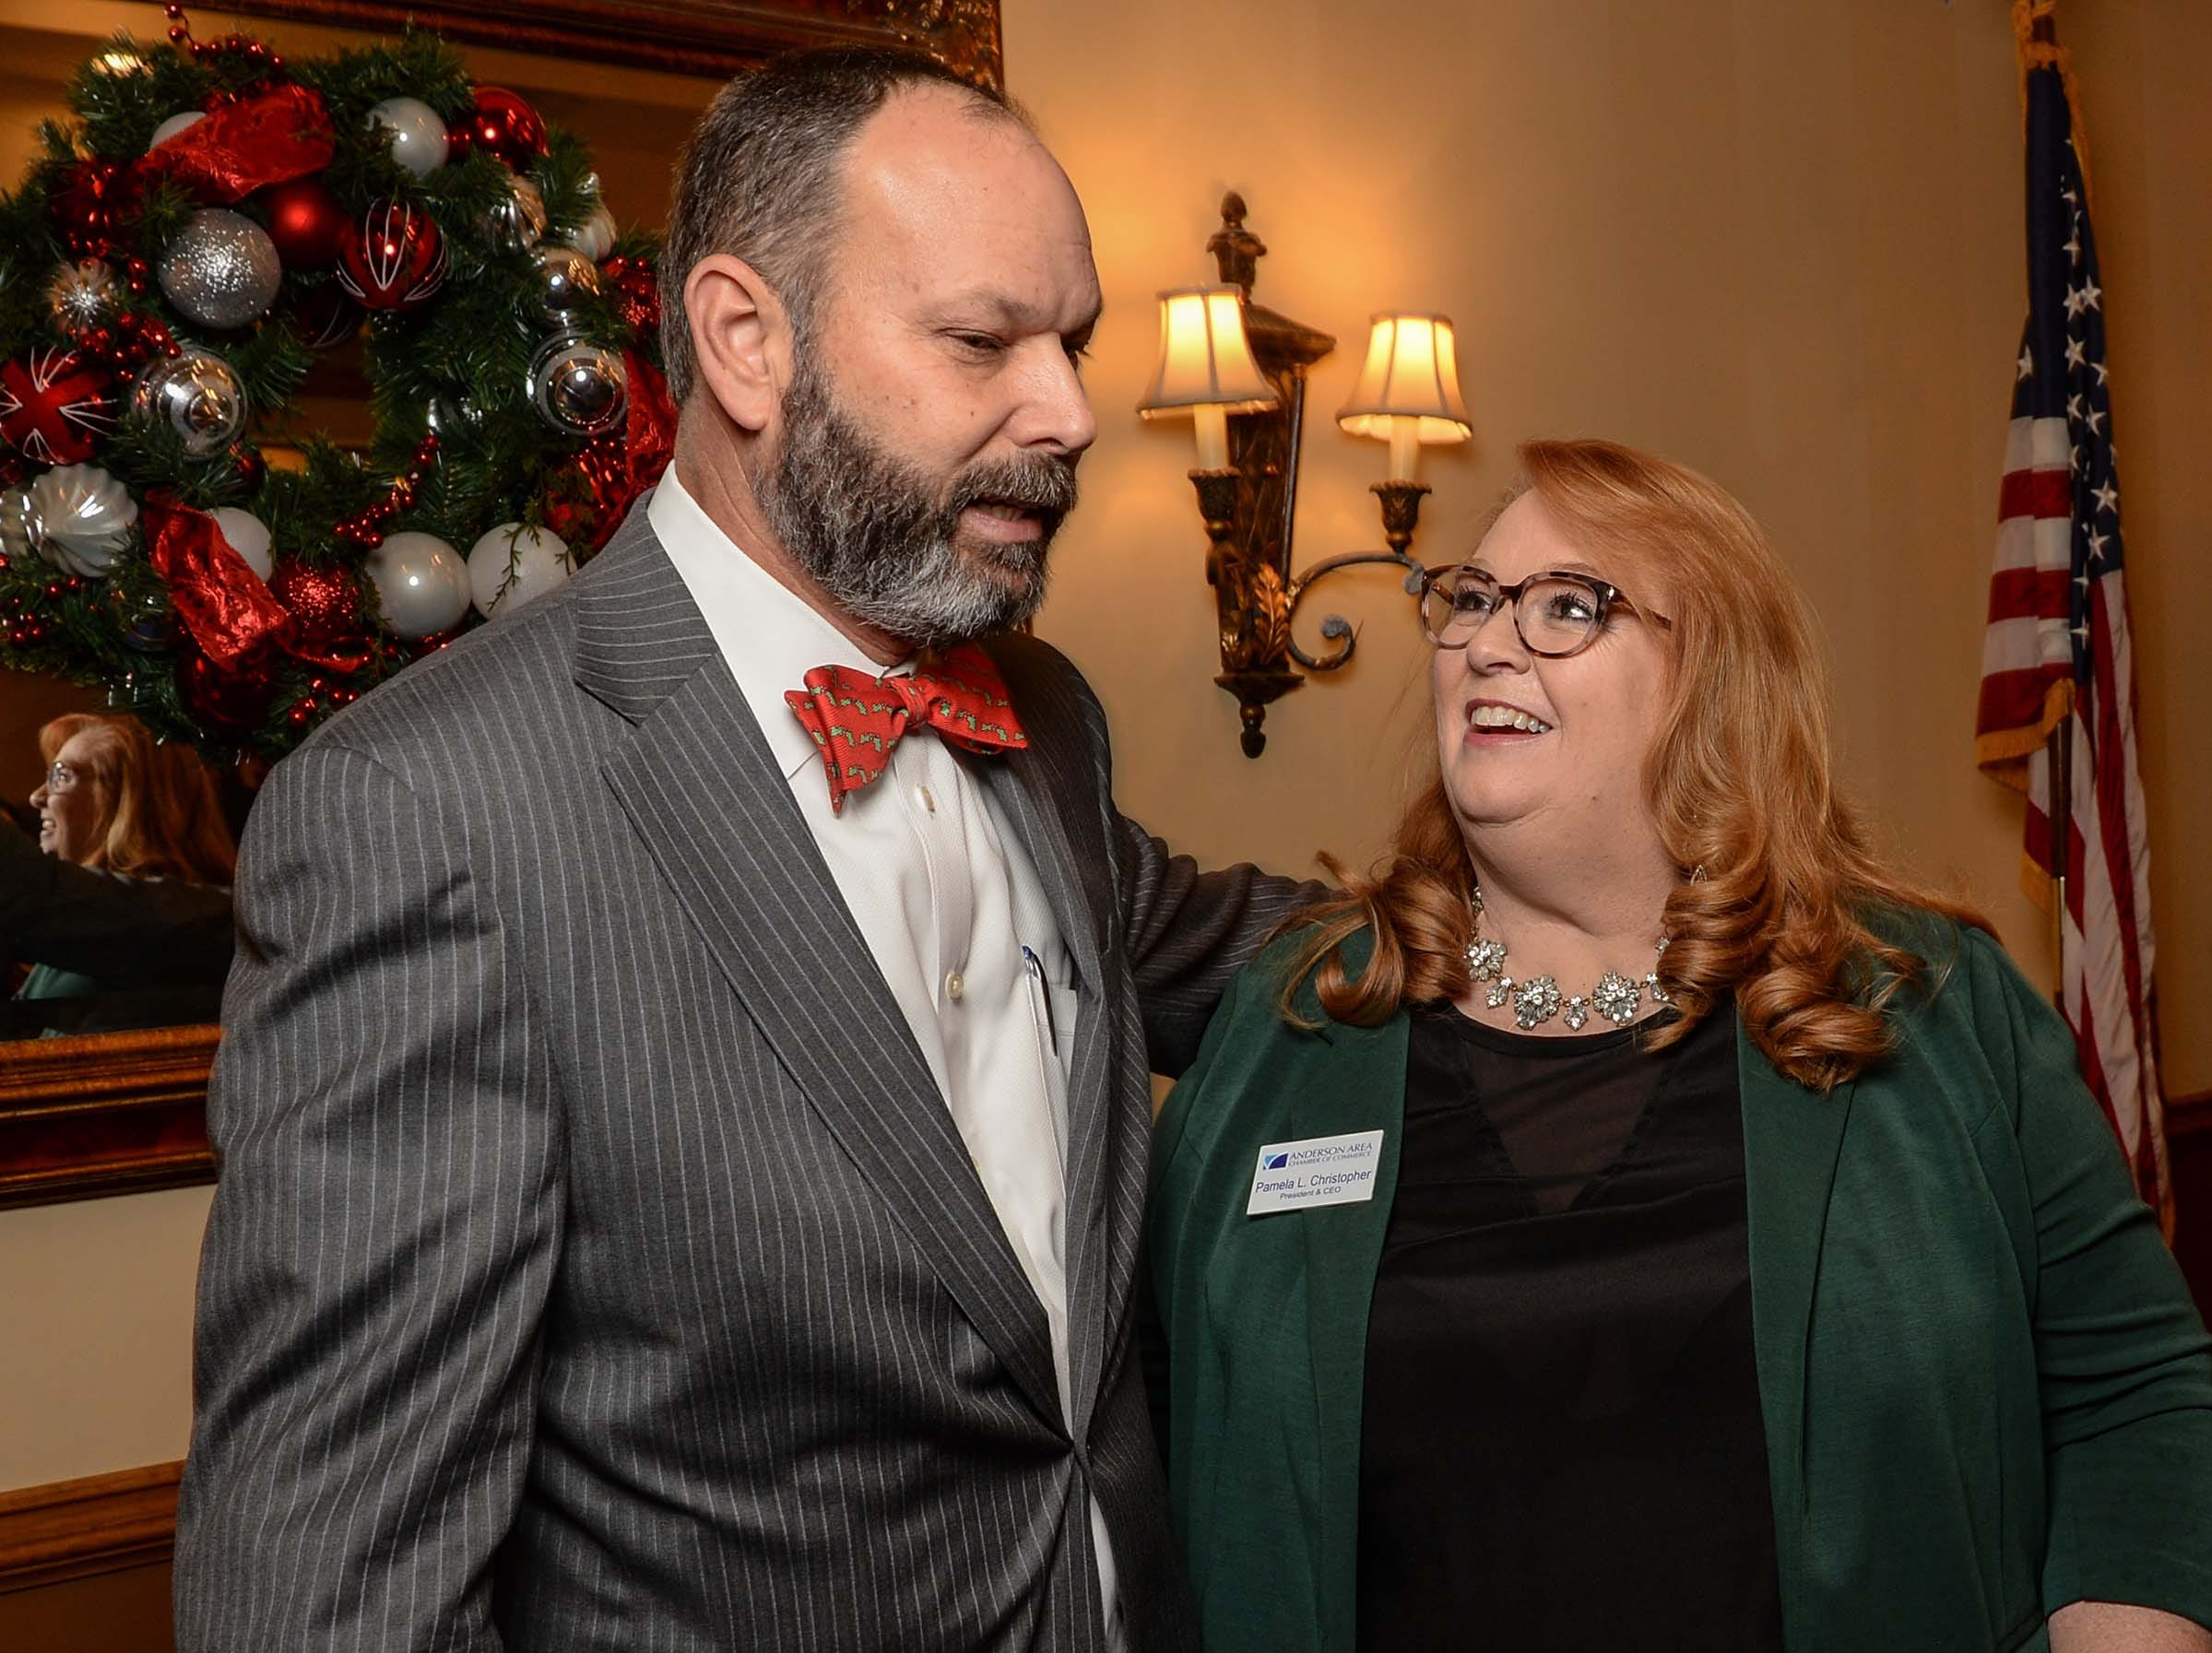 State Rep. Brian White was presented the 2017-2018 Business Champion Award during the chamber lunch at Tucker's in Anderson Thursday, December 13, 2018. President and CEO Pamela Christopher, right, of the Anderson Area Chamber of Commerce.